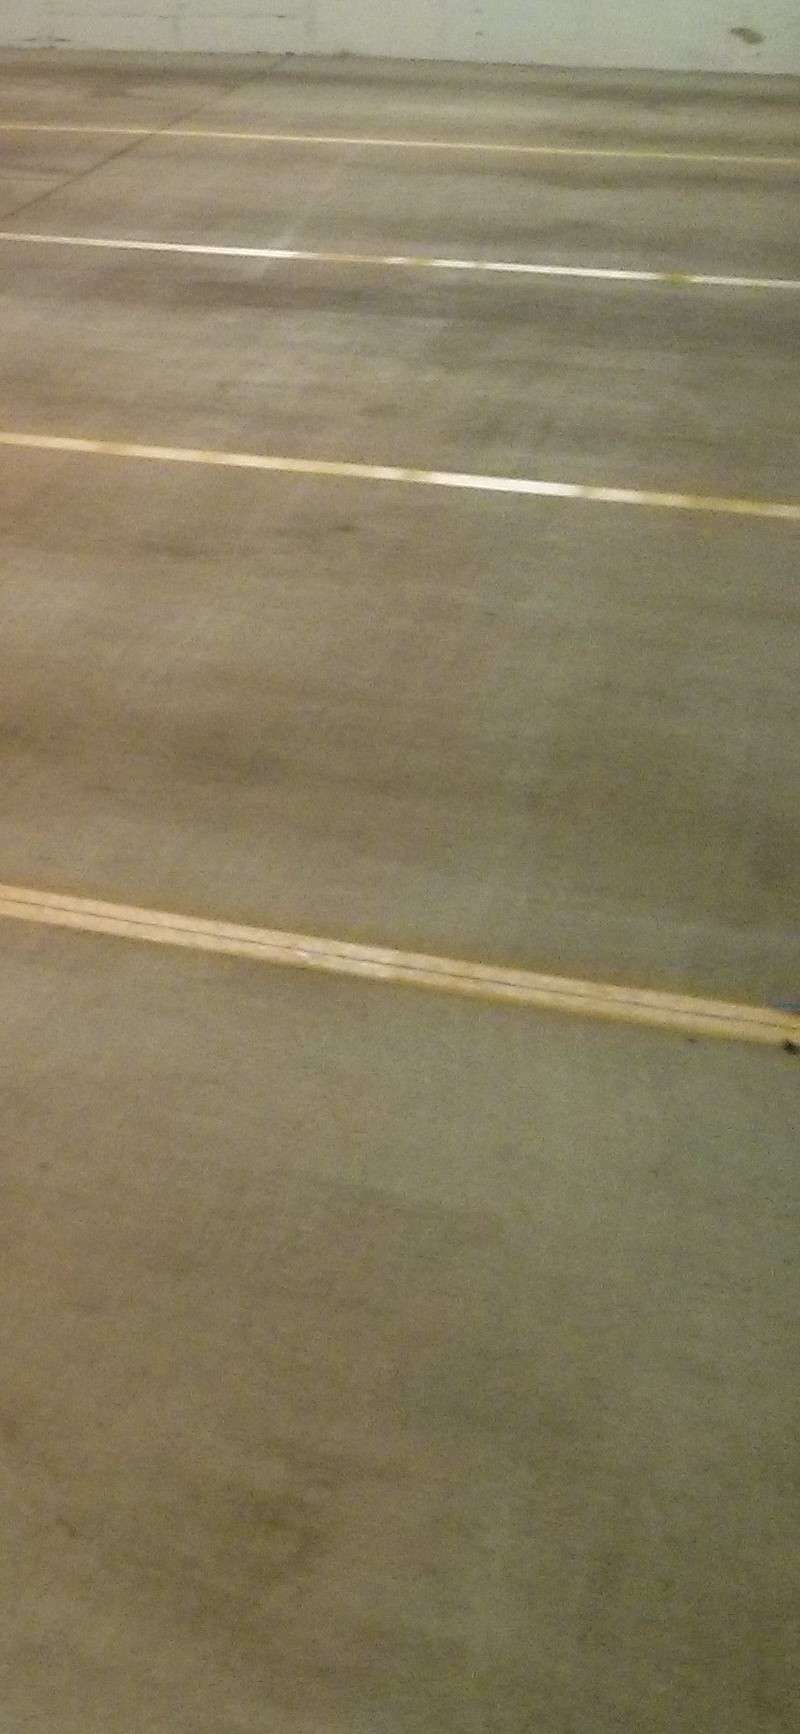 Parking garage floor cleaning and re striping job in minneapolis parking garage pressure wash and re striping in minneapolis solutioingenieria Image collections